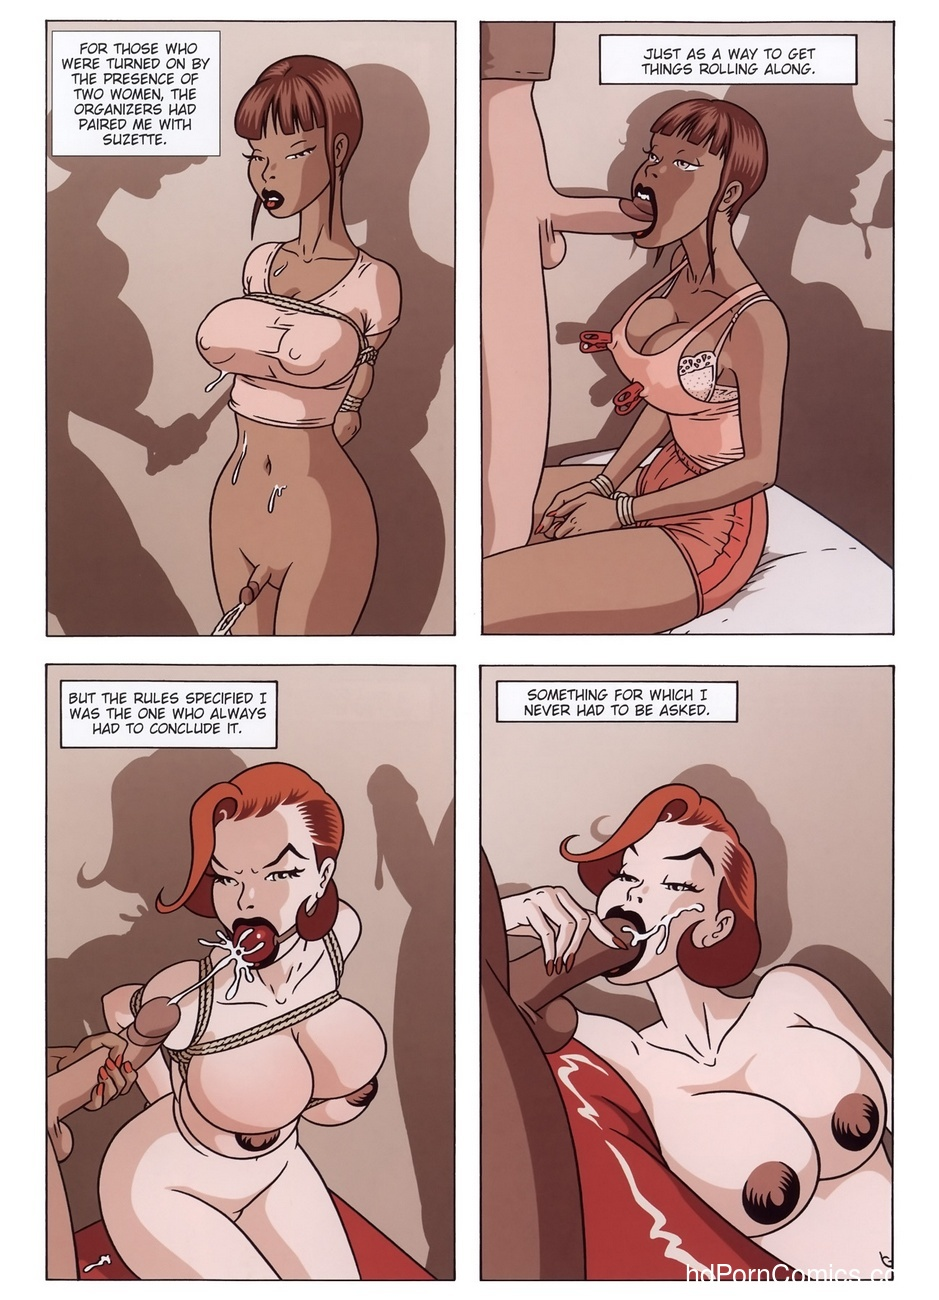 The 110 Blowjobs 20 free sex comic